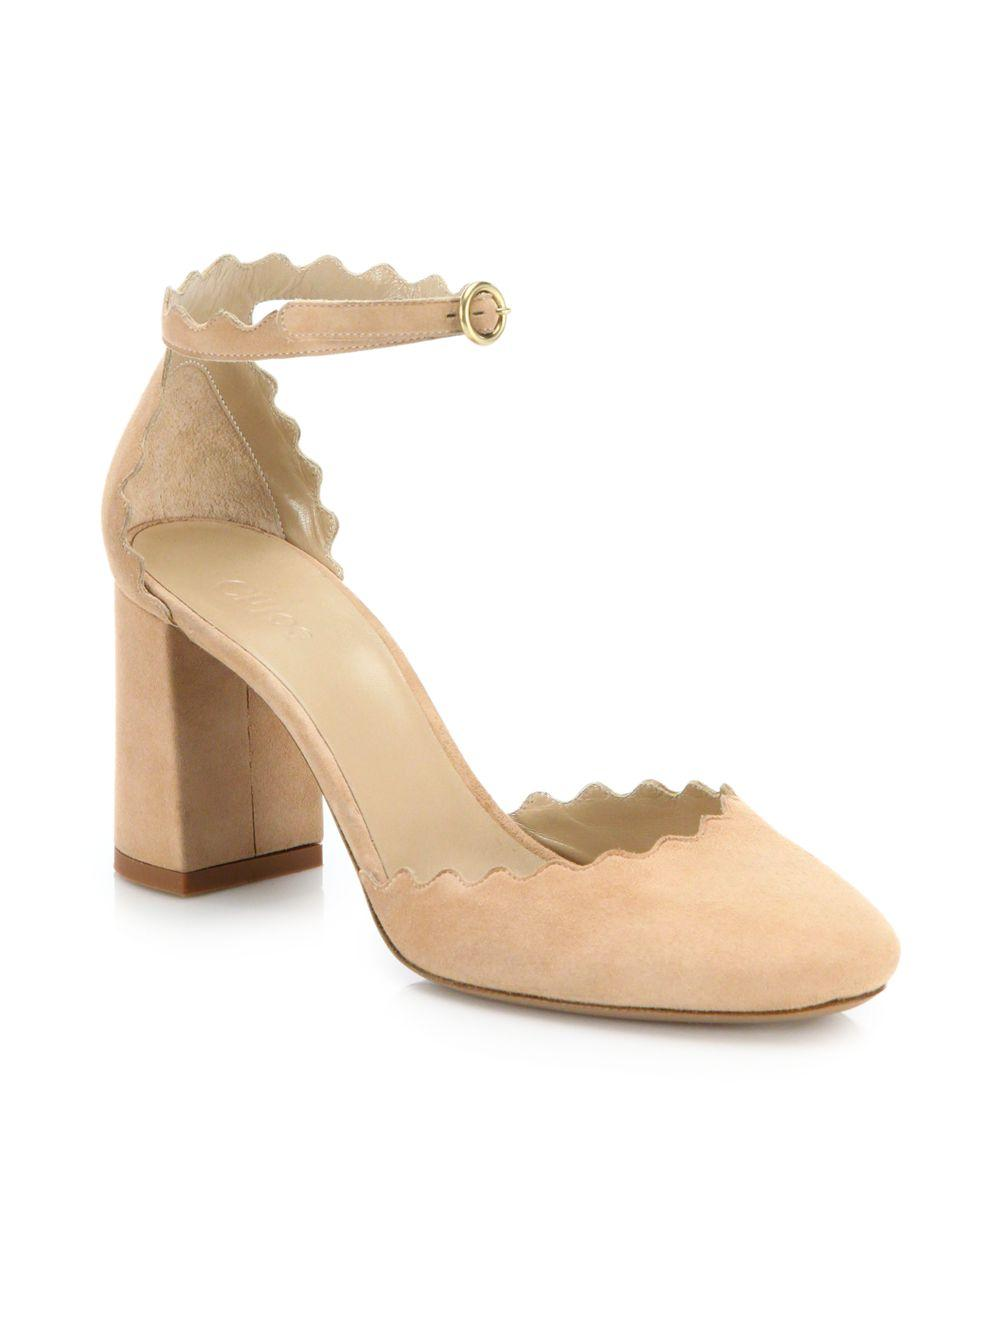 1e0d96711811 Chloé. Women s Natural Lauren Scalloped Suede D orsay Block Heel Pumps